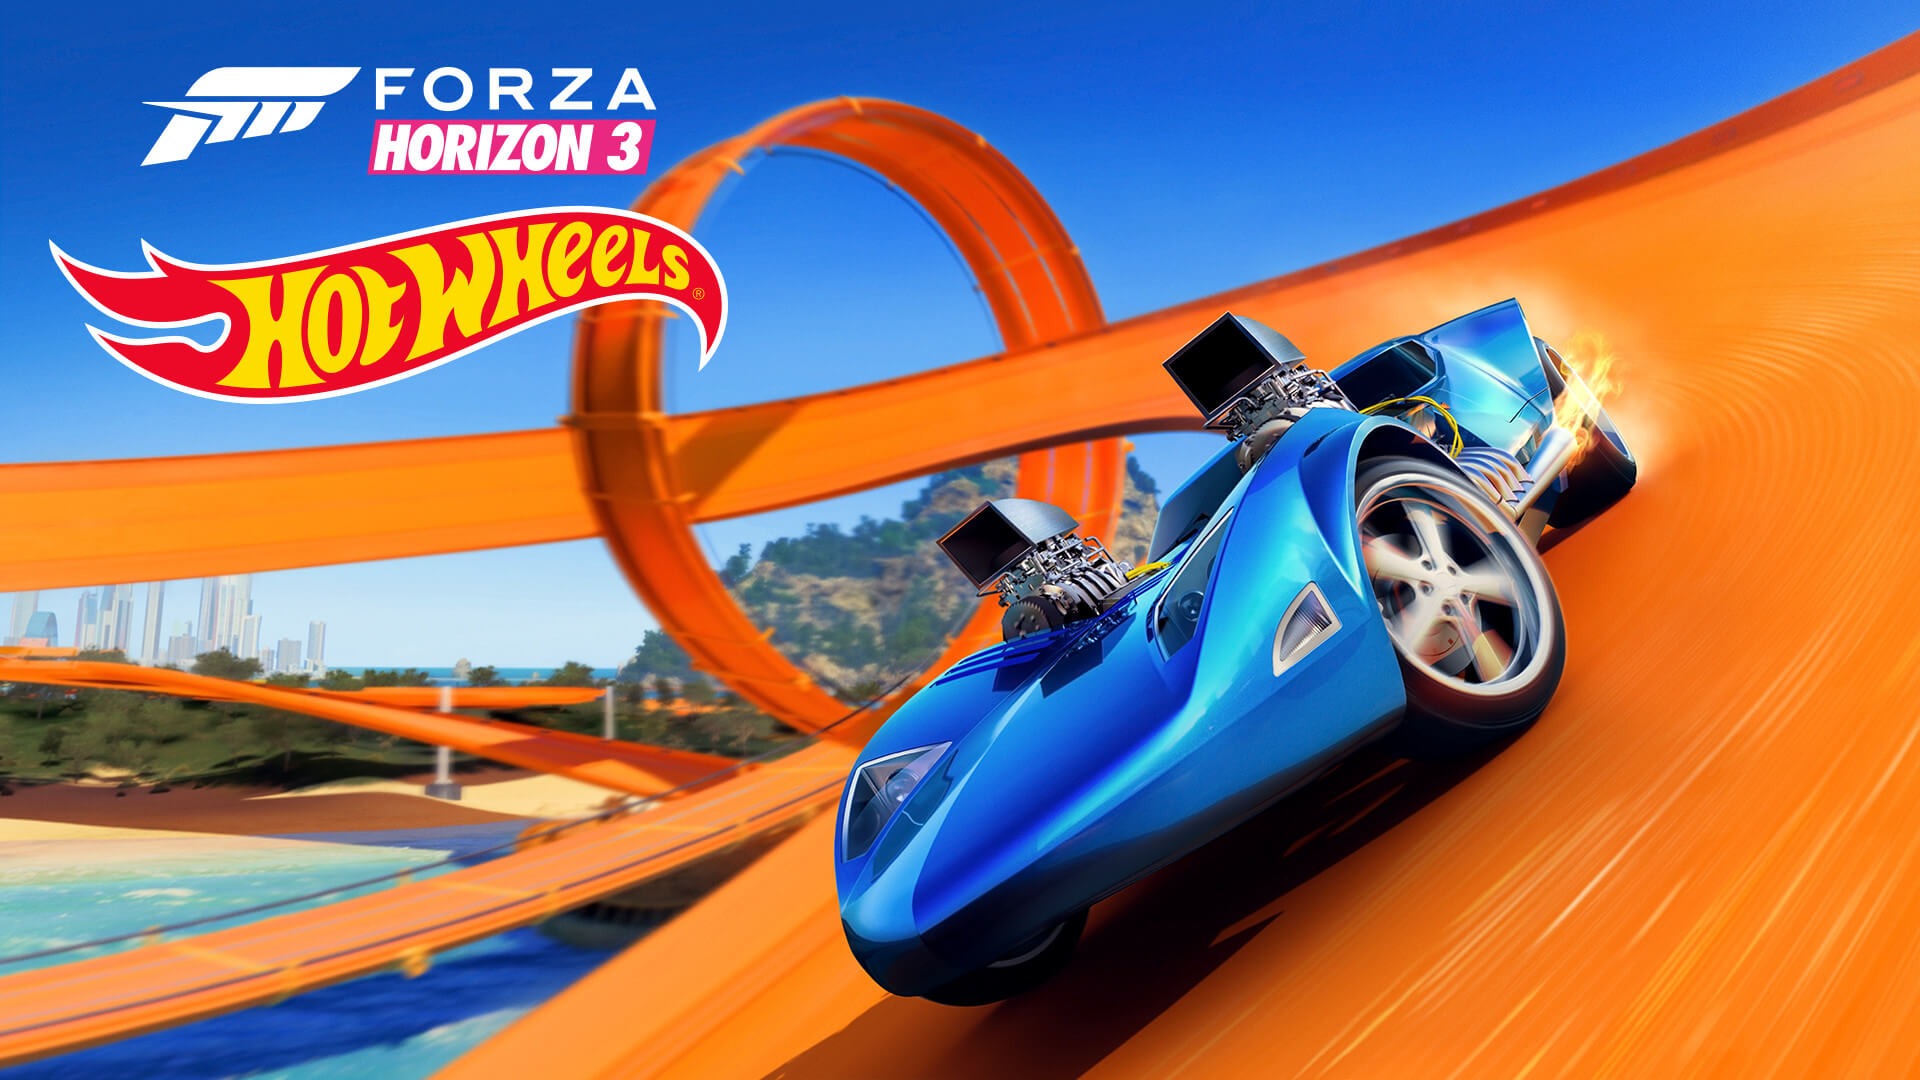 Forza Horizon 3 - Hot Wheels Expansion Masthead